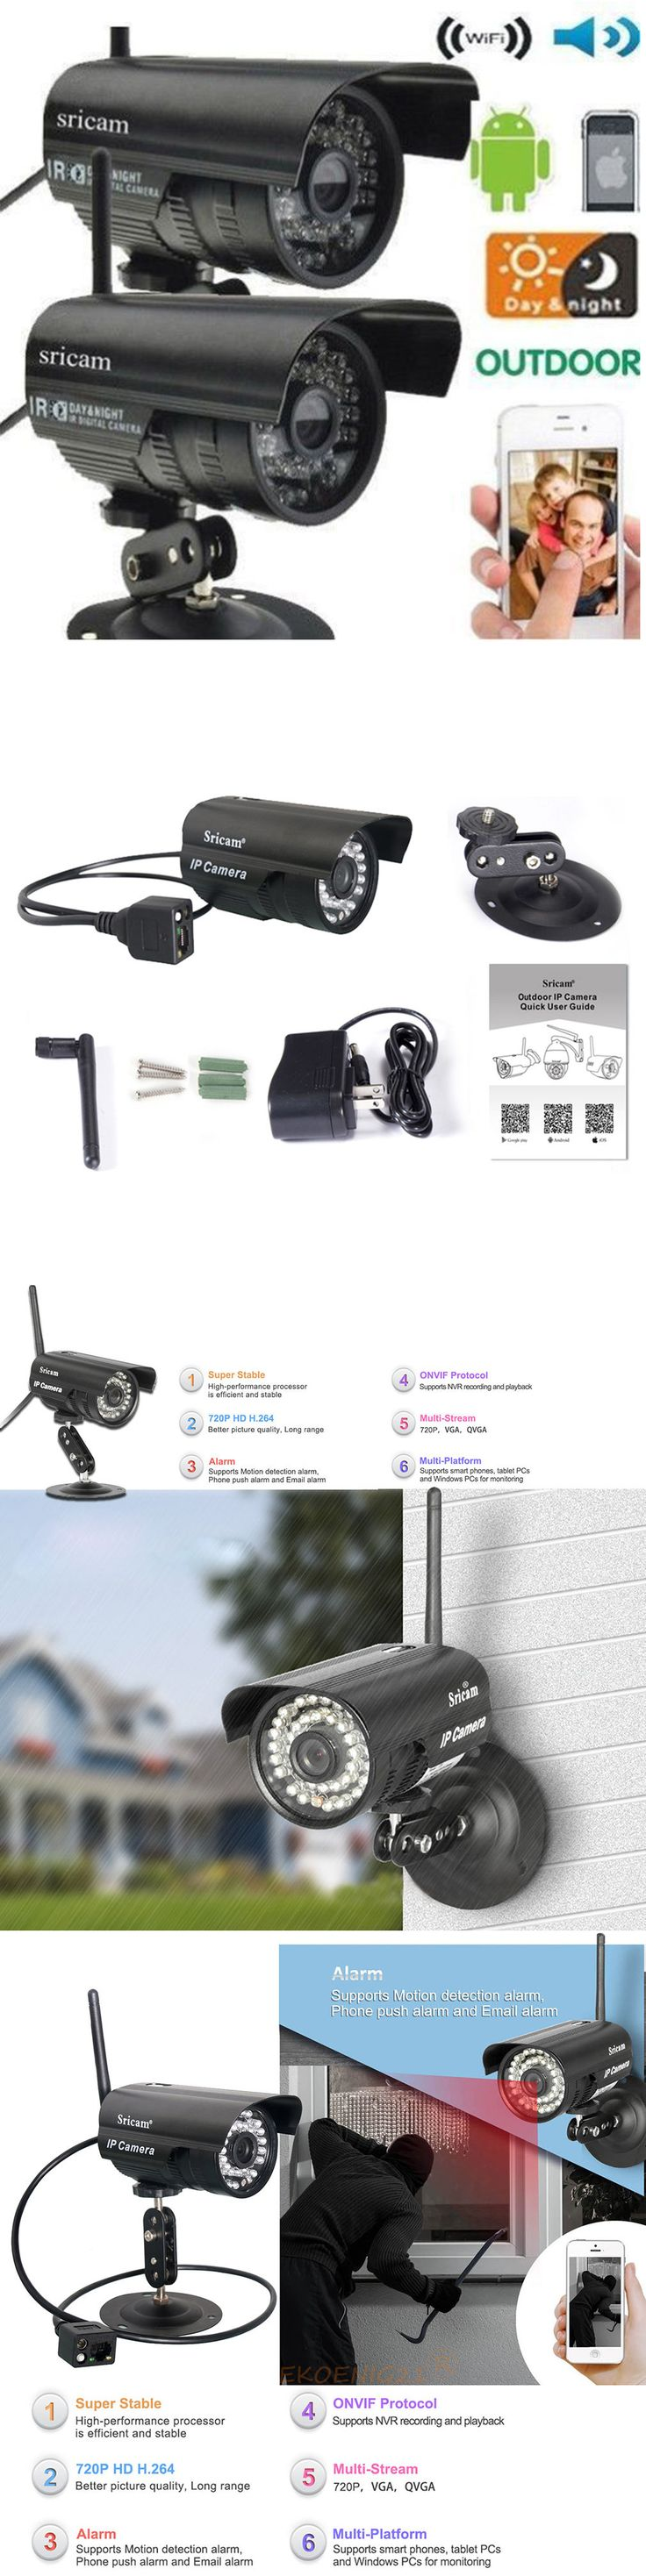 Security Cameras: 2X Sricam Outdoor Wireless Waterproof Ir Ip Camera Network Spy Cam Night Vision BUY IT NOW ONLY: $62.59